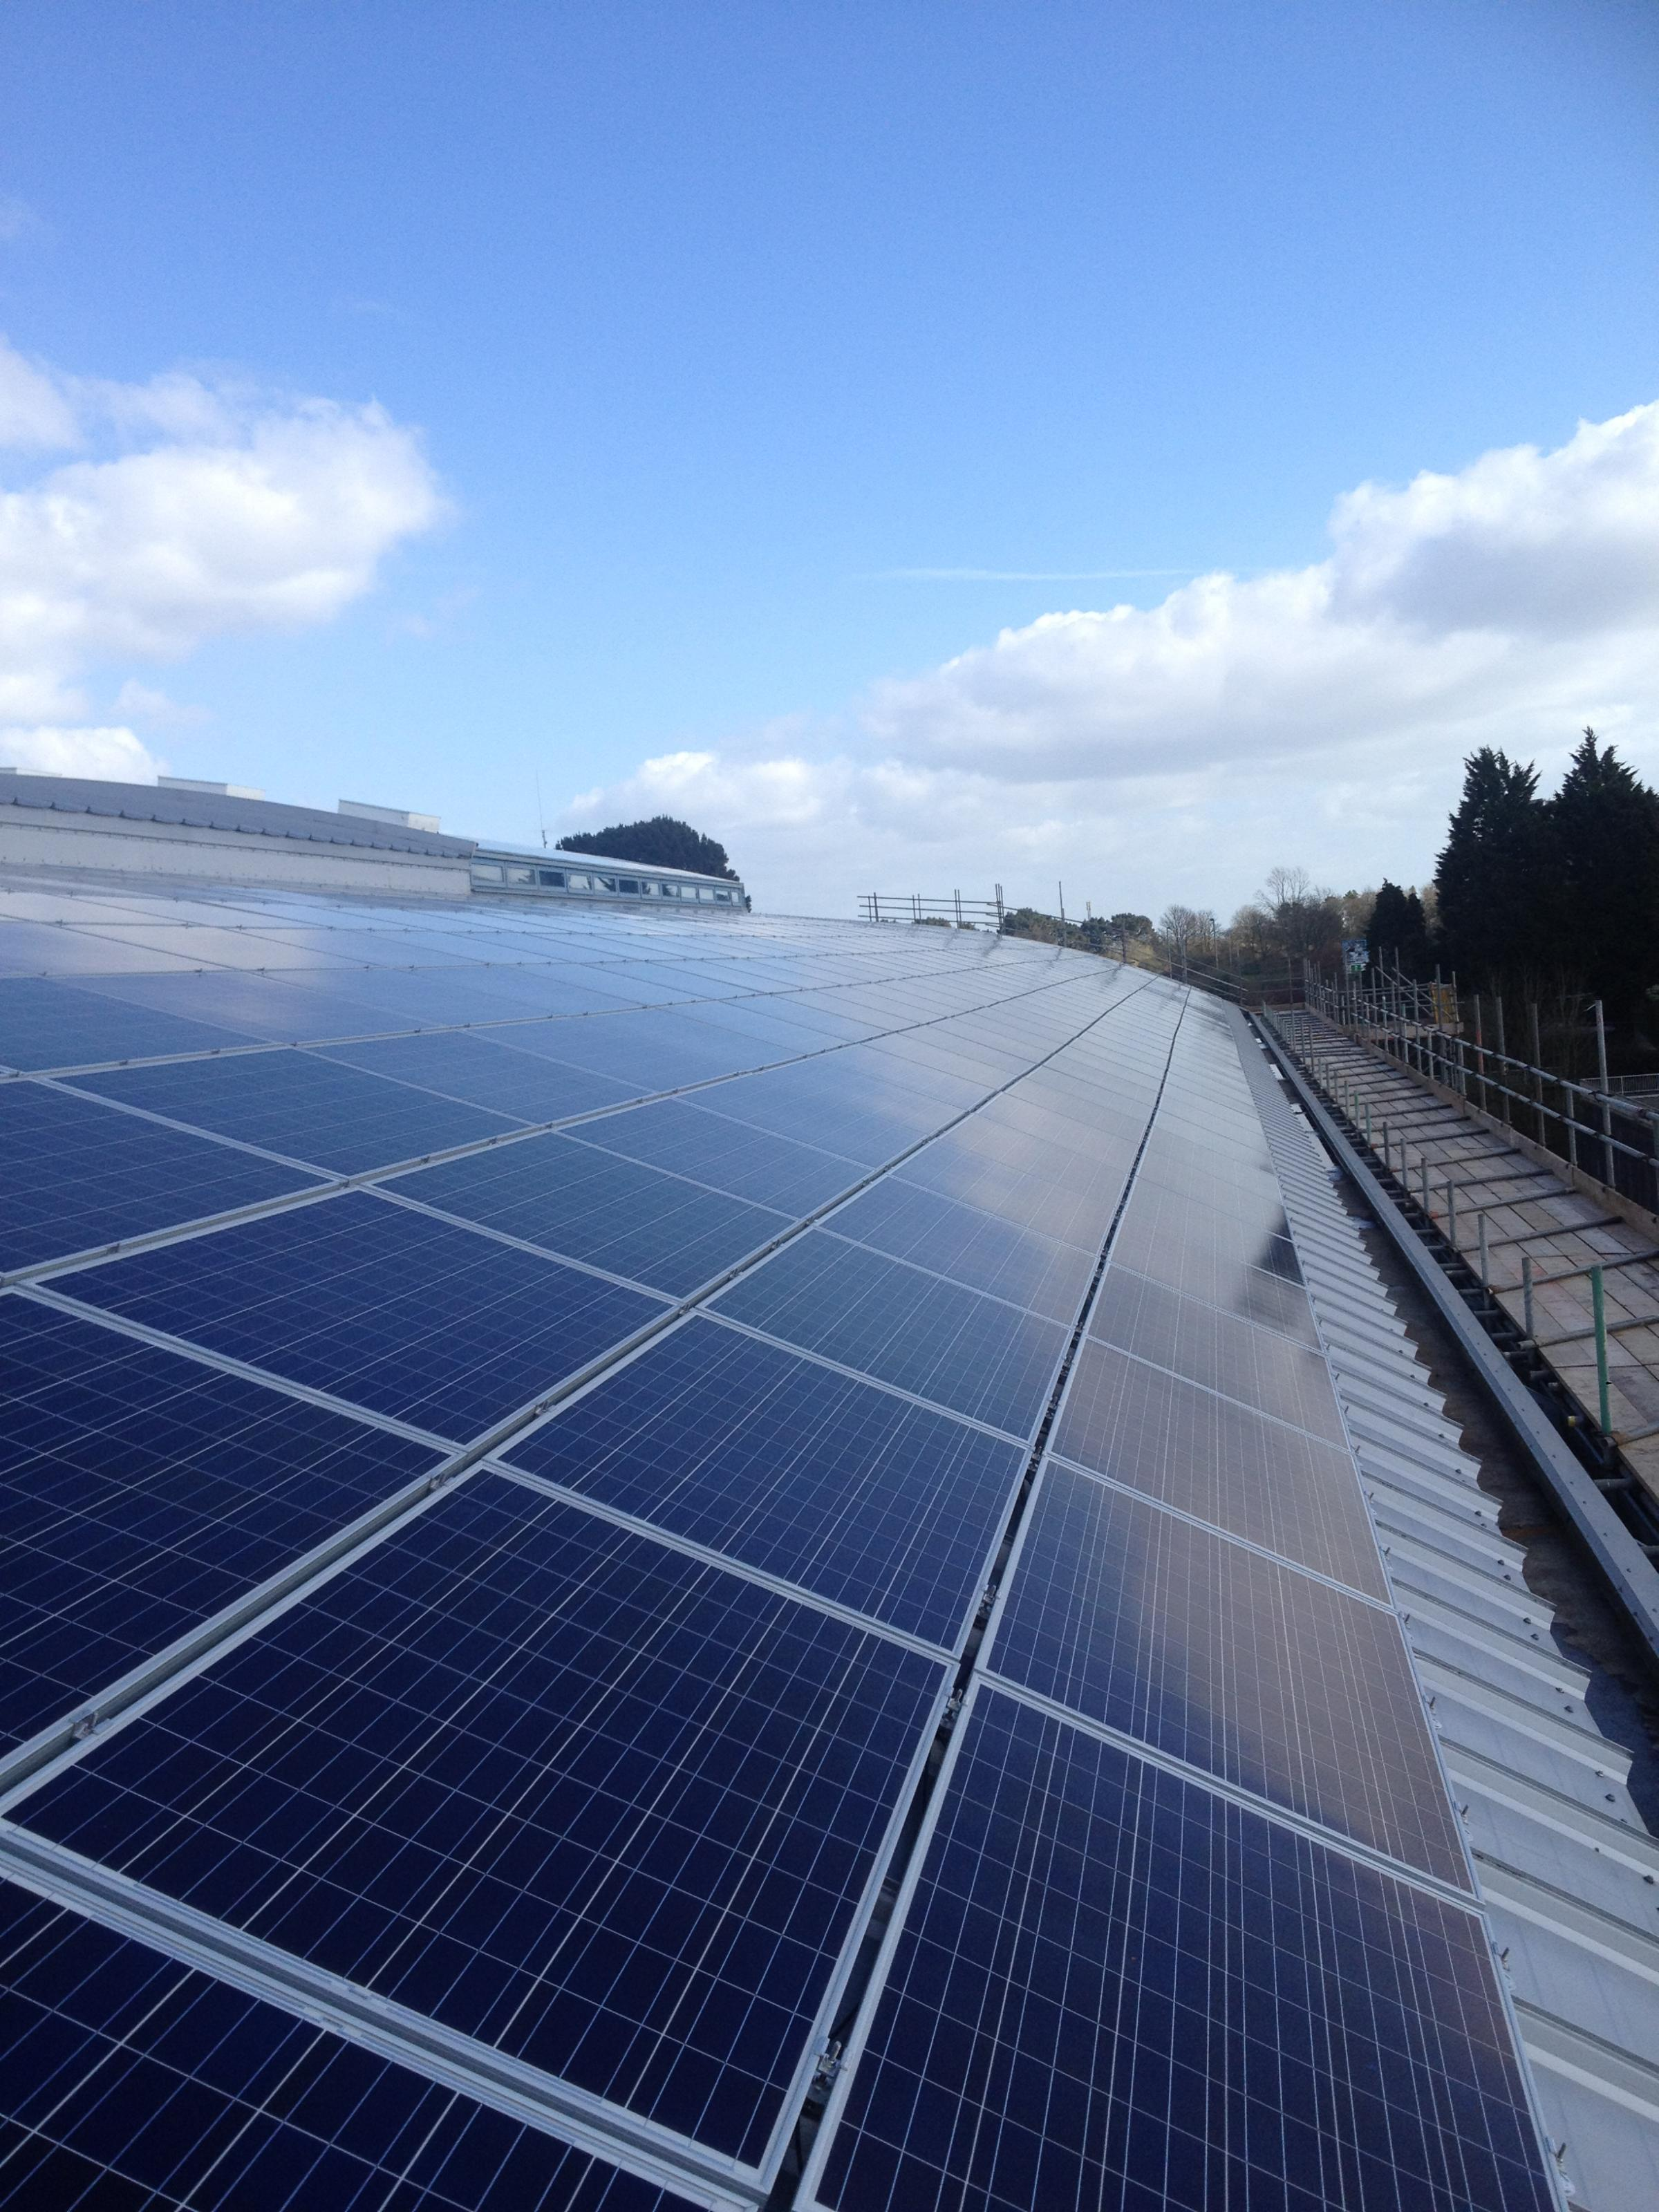 Appeal lodged after solar farm plans thrown out